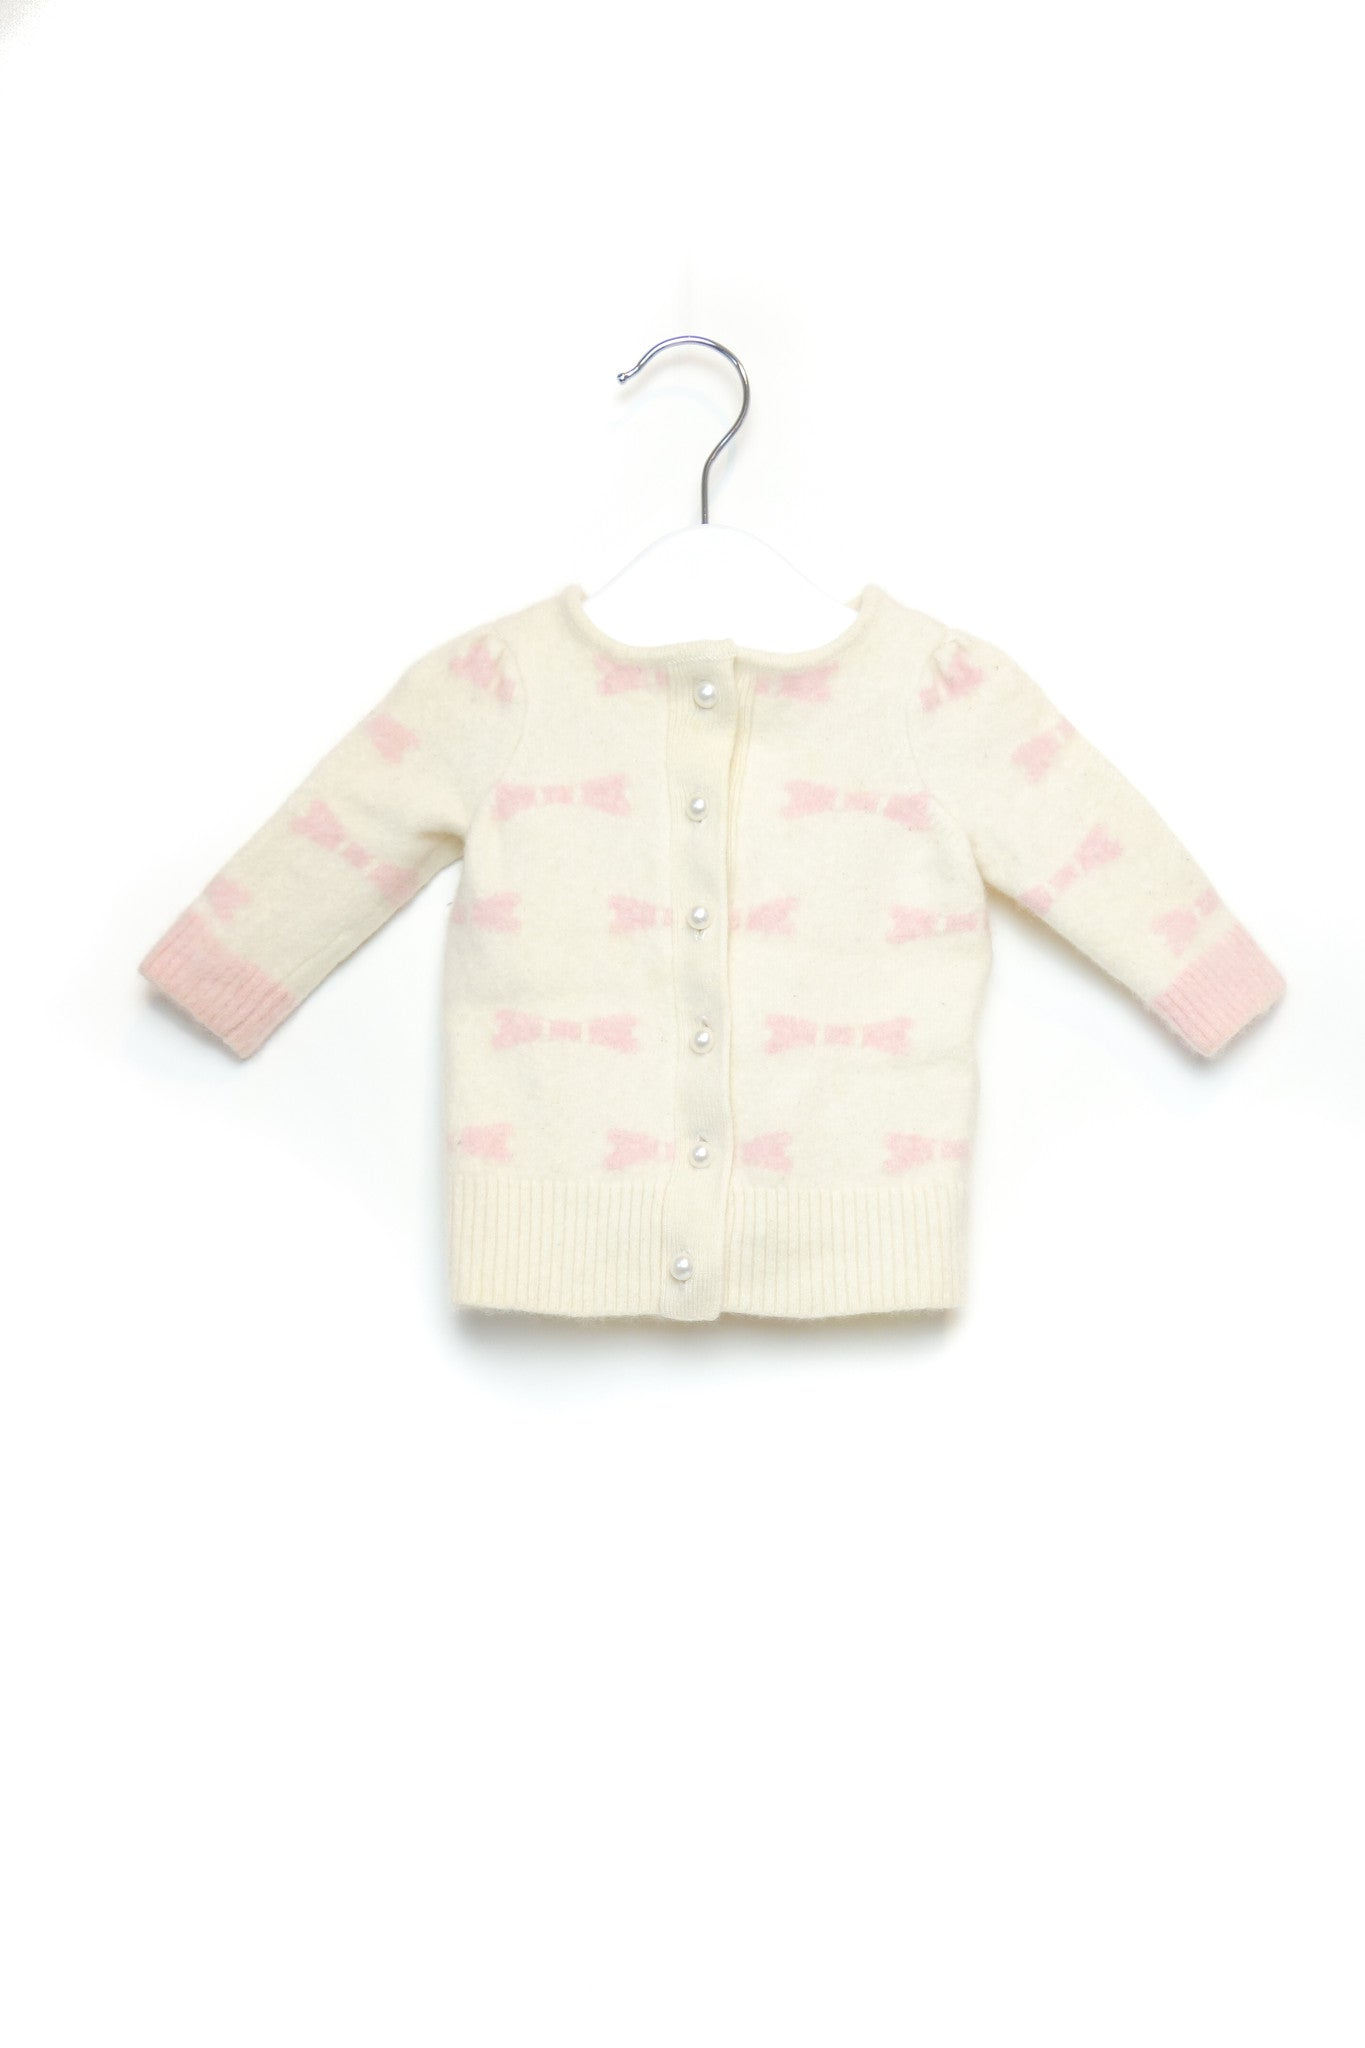 10001473 Nicholas & Bears Baby~Cardigan 12M at Retykle